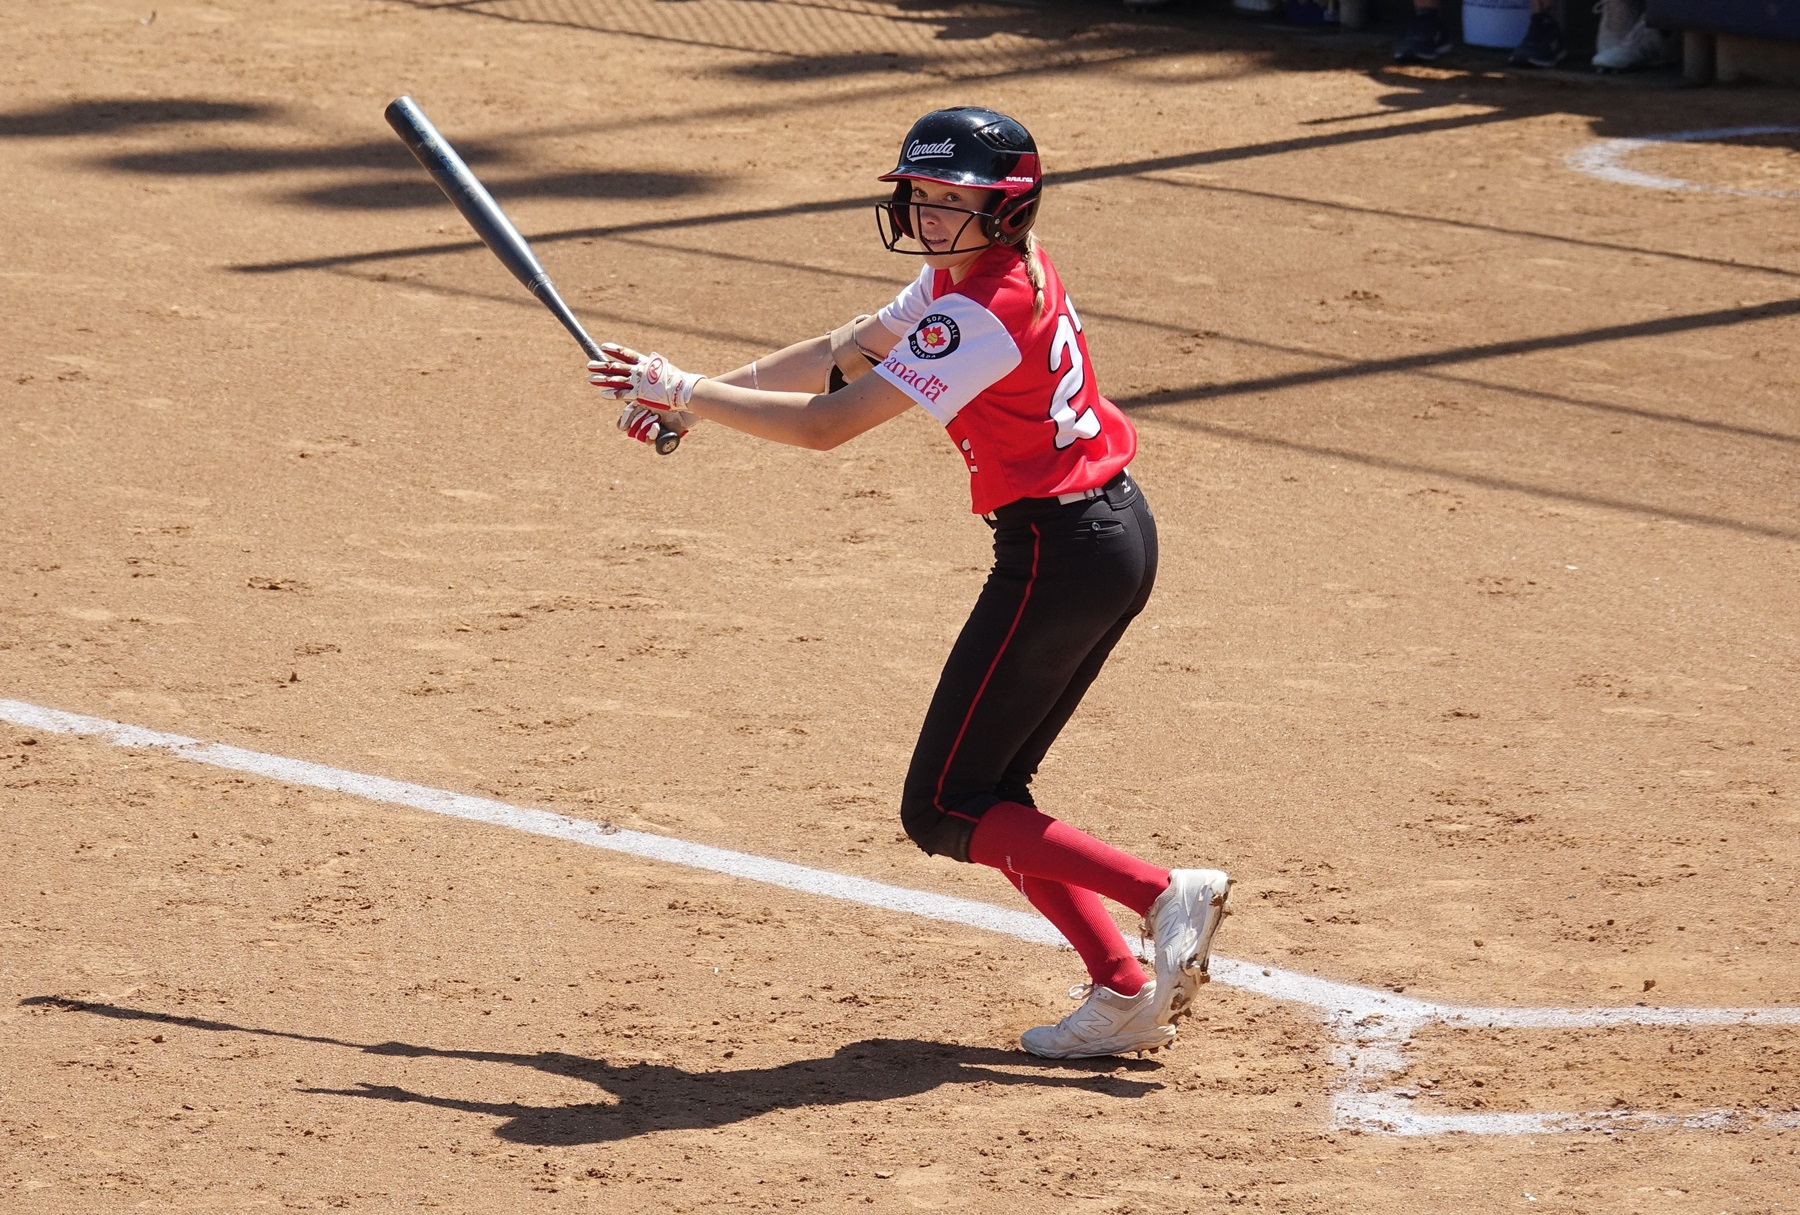 Kendra Falby lead off the bottom of the first with a hit